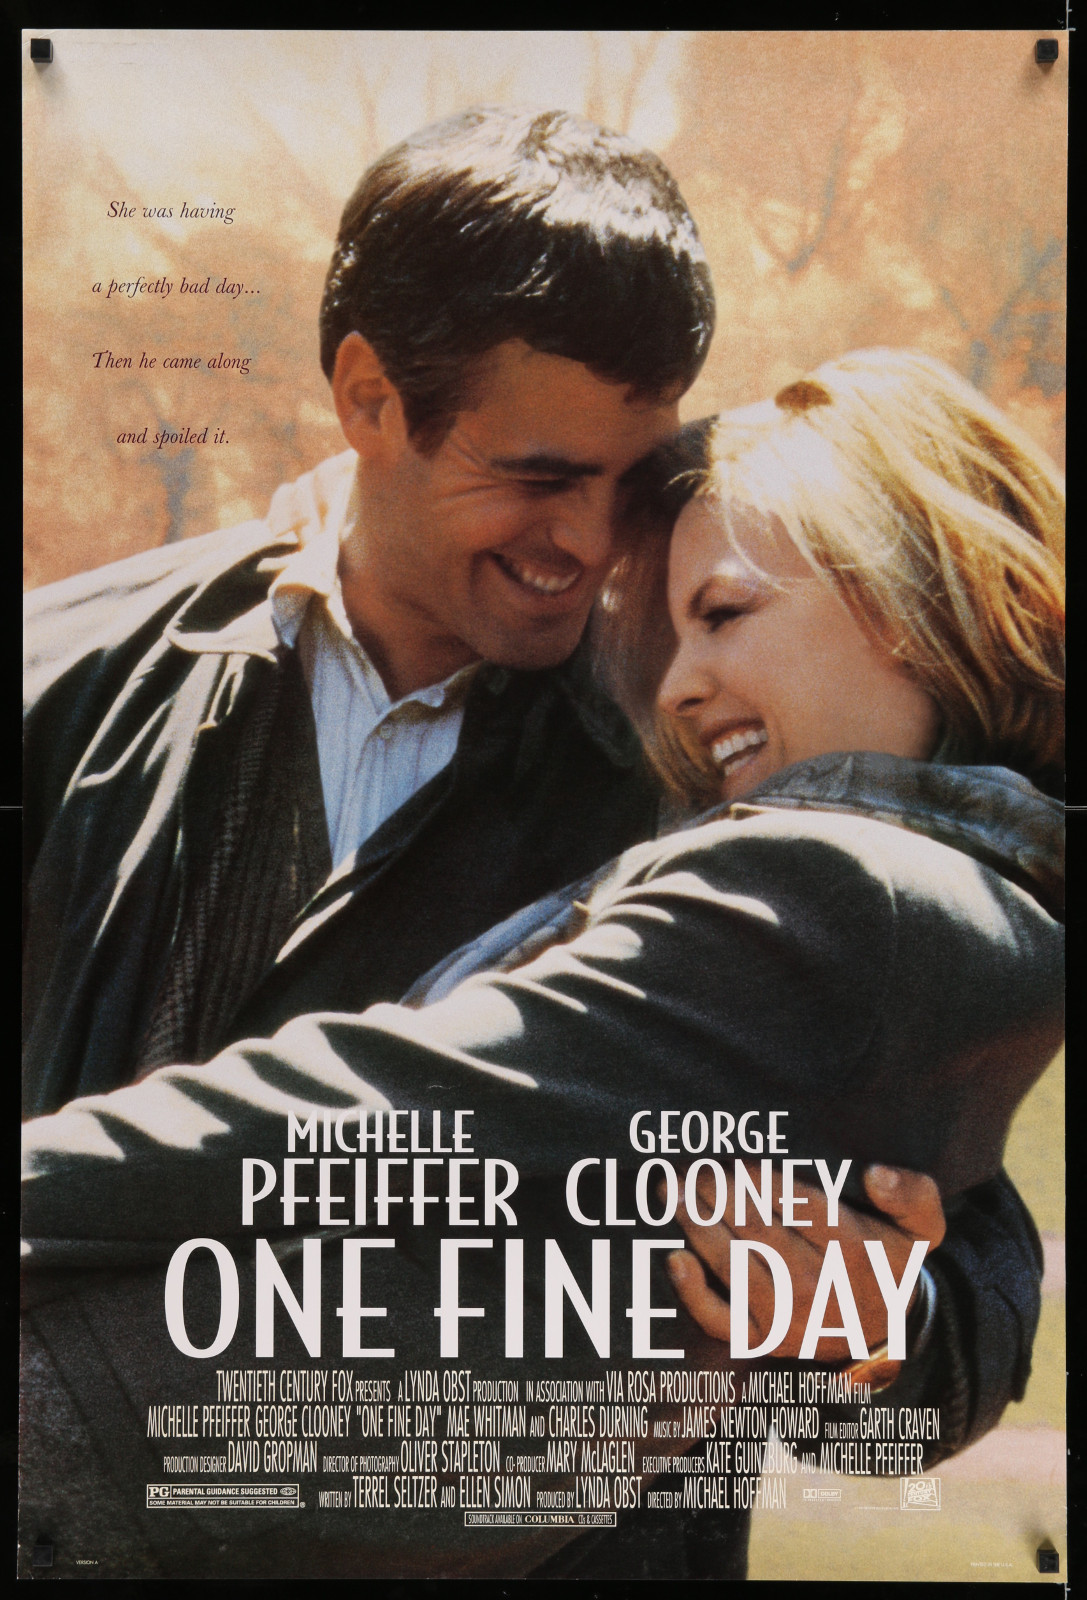 One Fine Day 2A446 A Part Of A Lot 17 Unfolded Mostly Double-Sided 27X40 One-Sheets '90S-00S Great Movie Images!